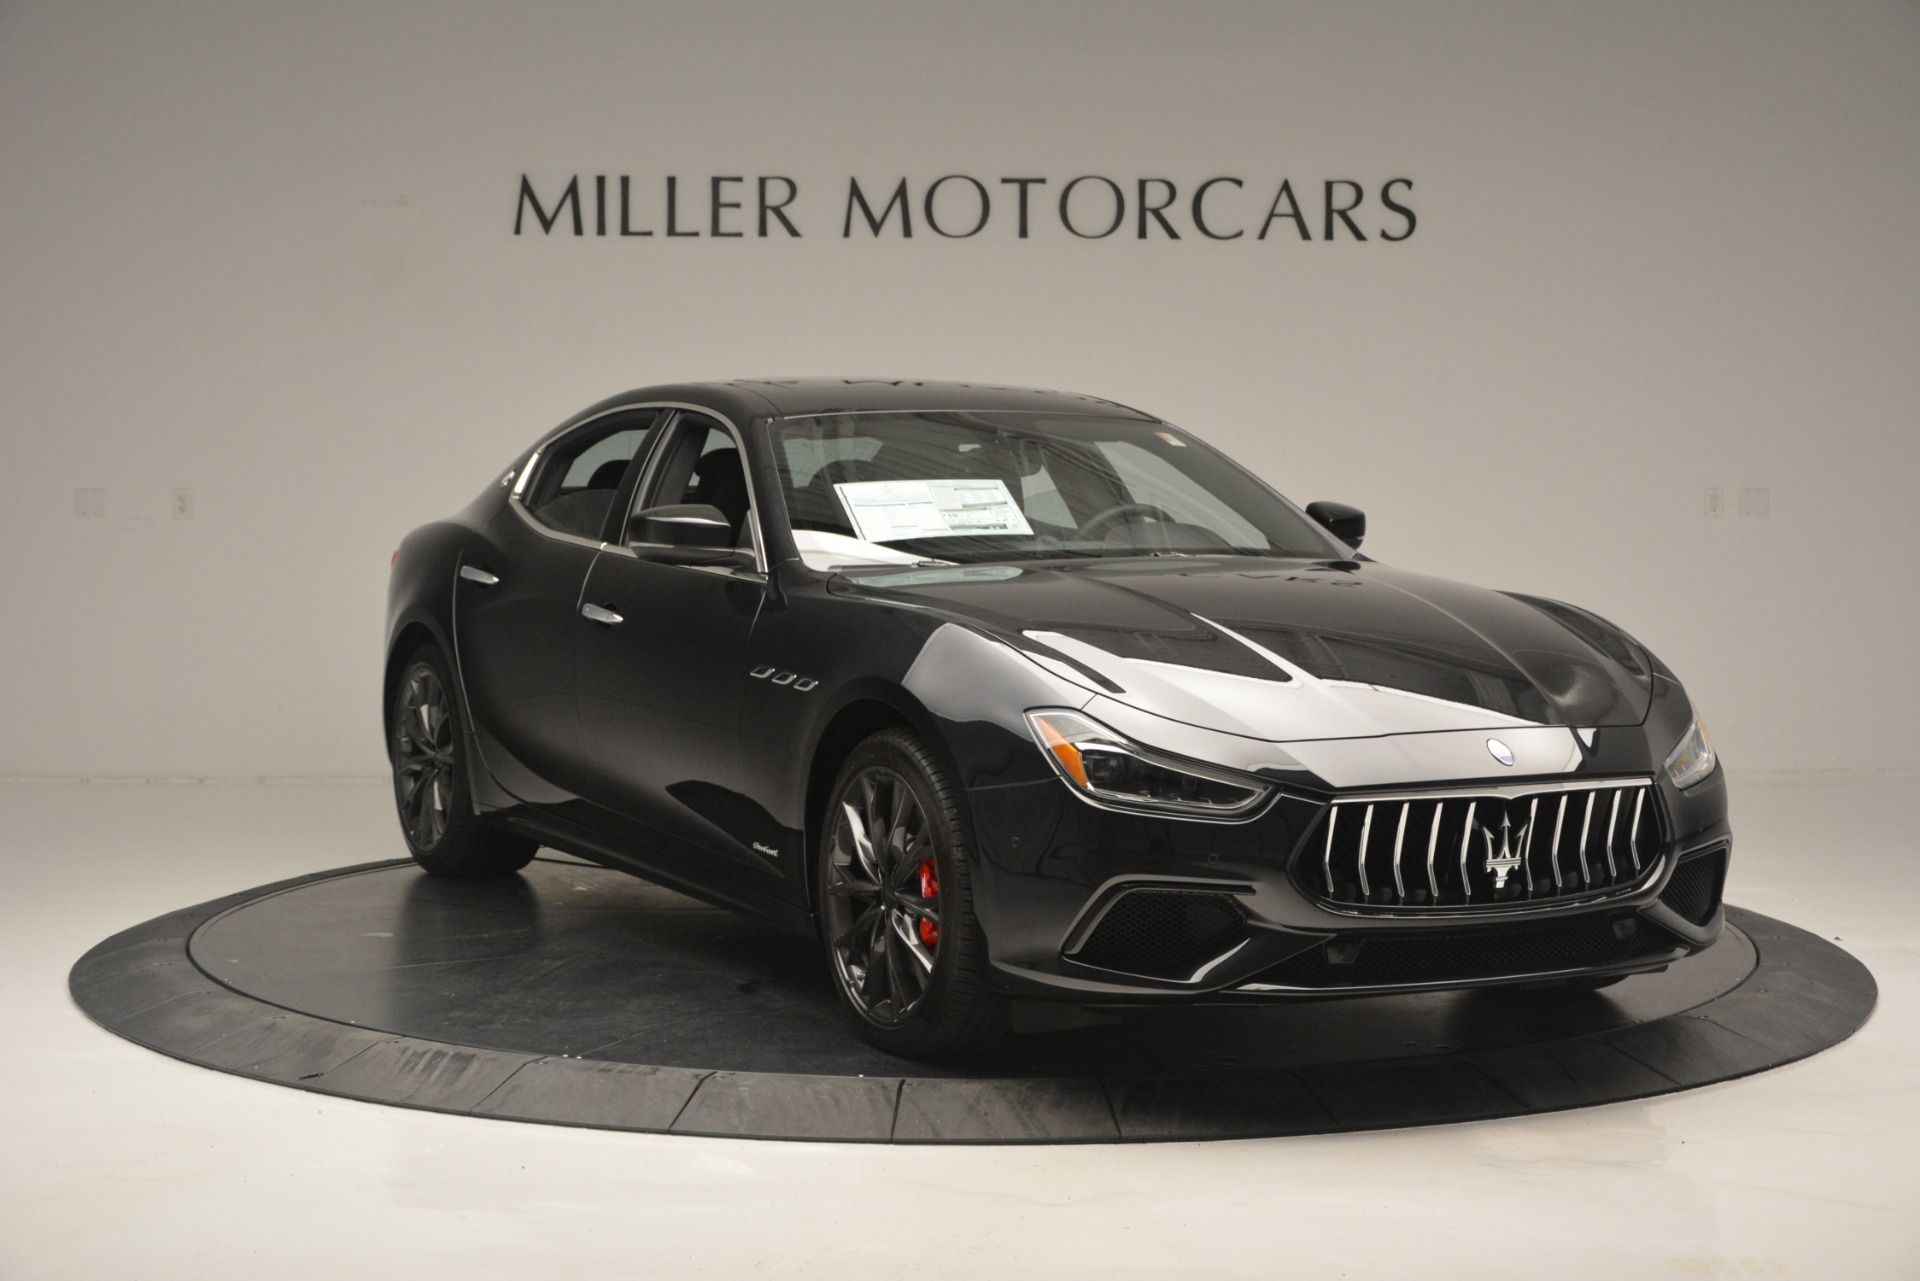 New 2019 Maserati Ghibli S Q4 GranSport For Sale In Greenwich, CT 2635_p11